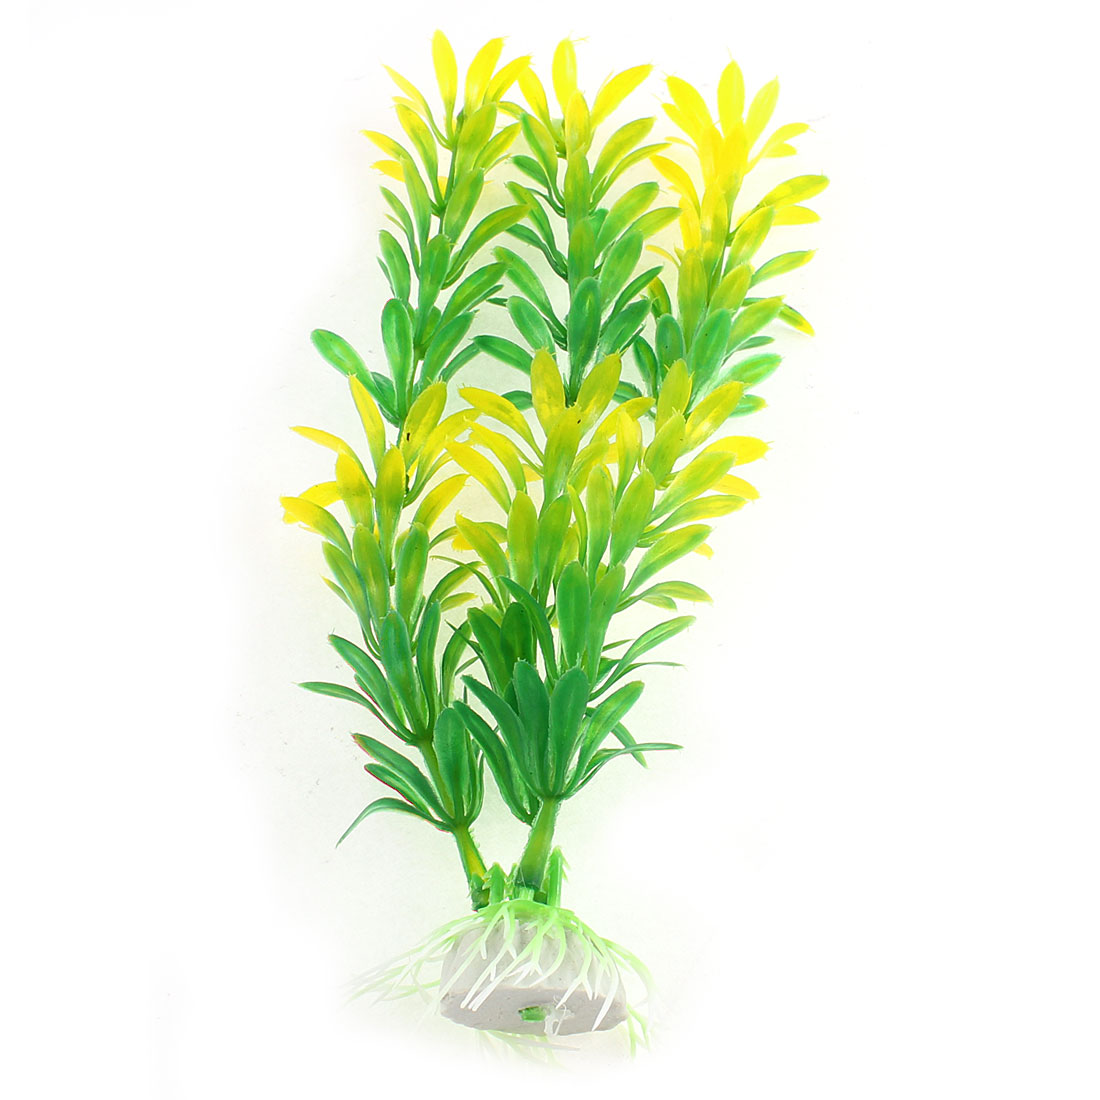 "Fish Tank Green Yellow Artificial Aquarium Plant Aquatic Grass Deocr 8"" 20cm Height w Ceramic Base"